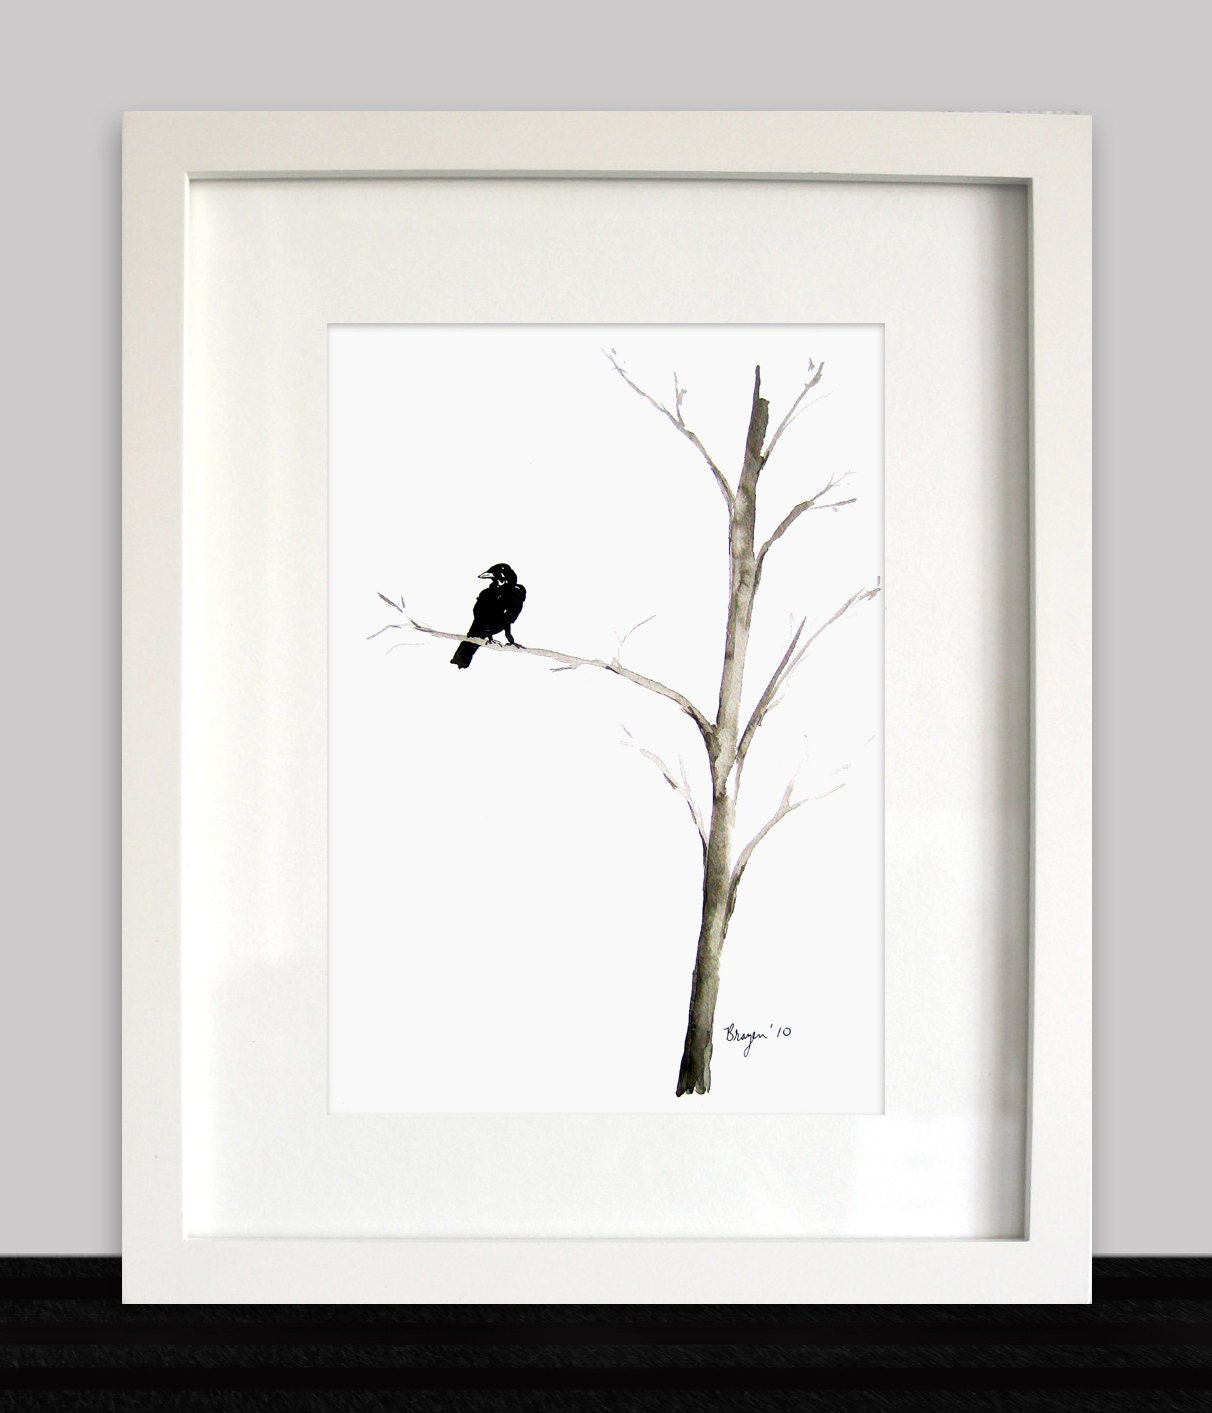 Like this item - White wooden picture frames ...